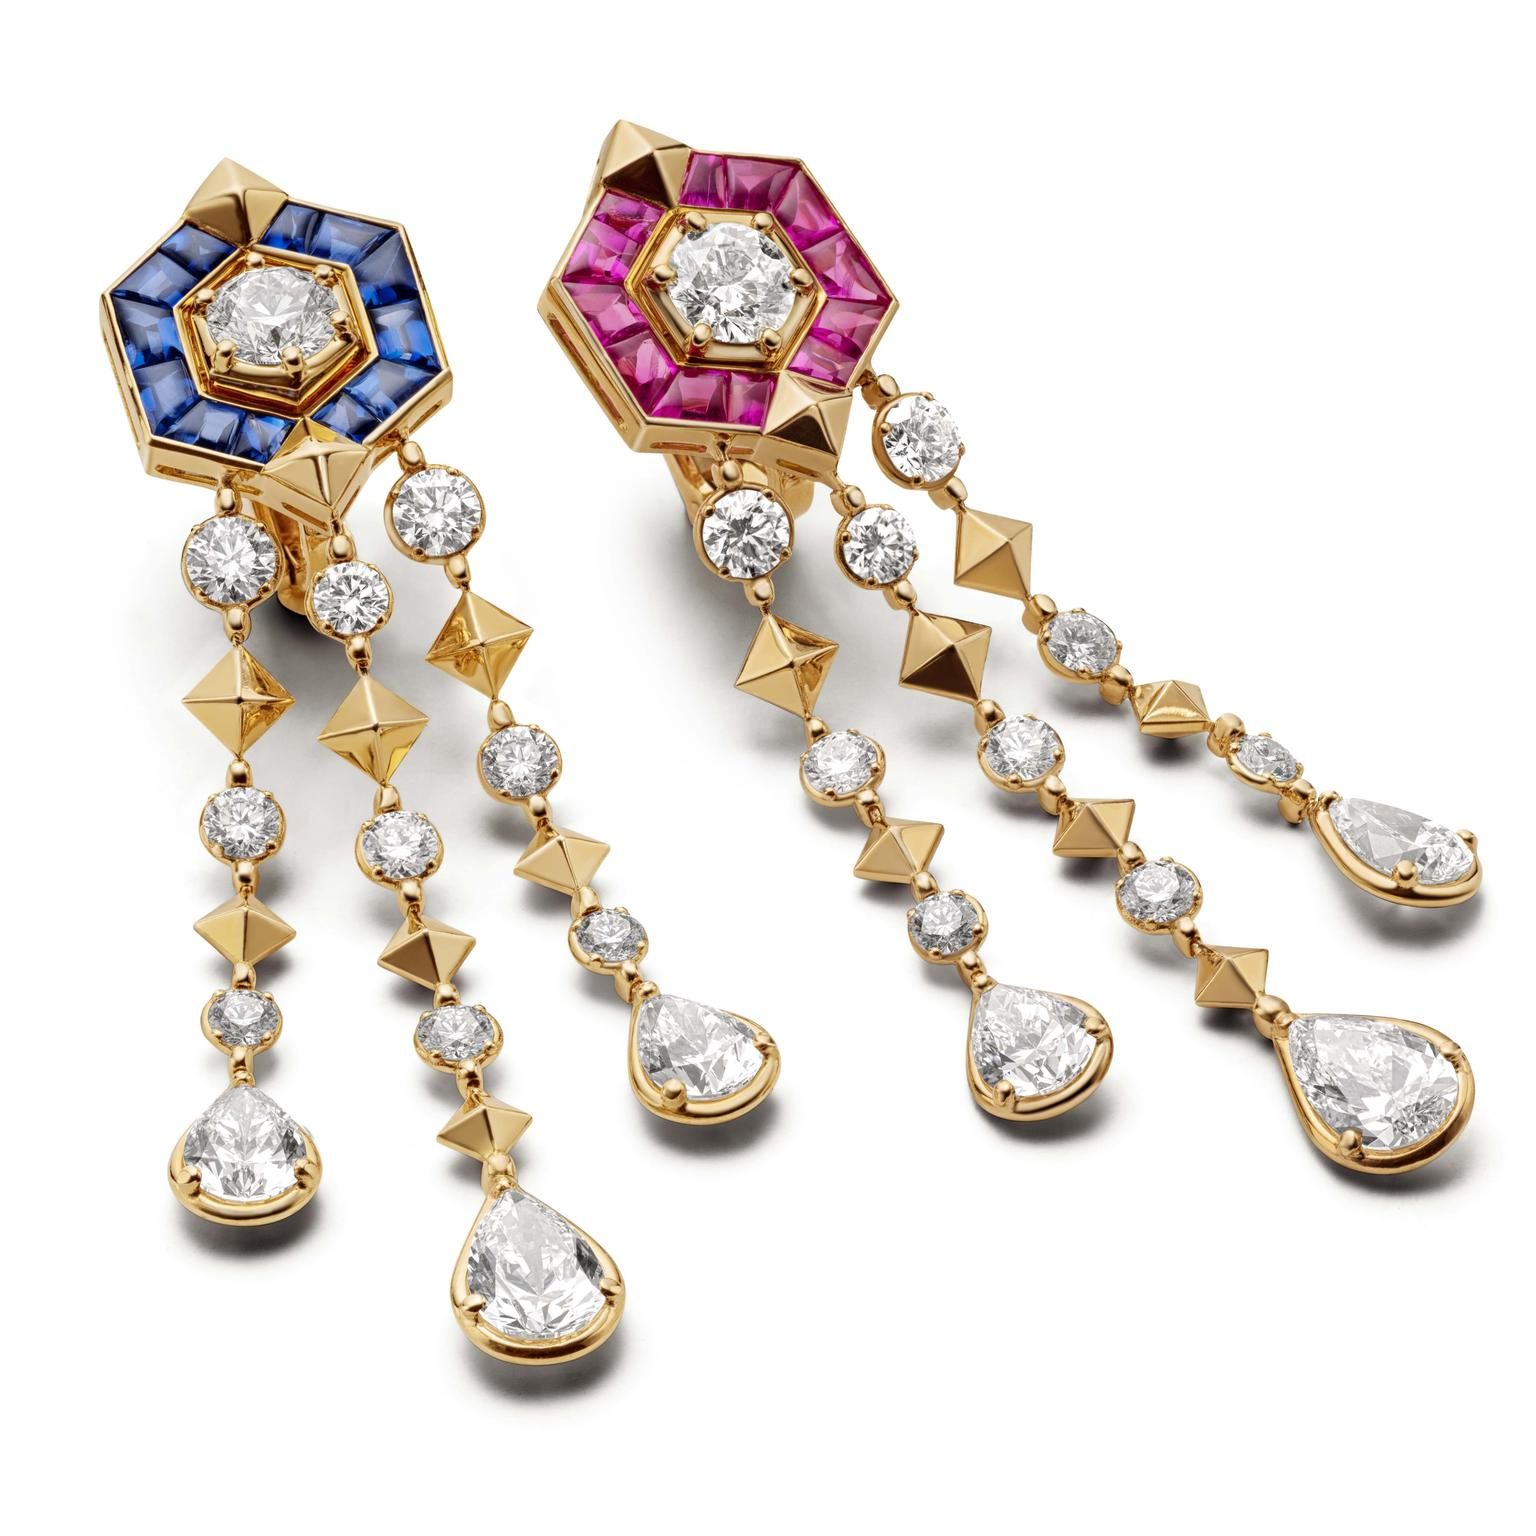 Bulgari Barocko earrings